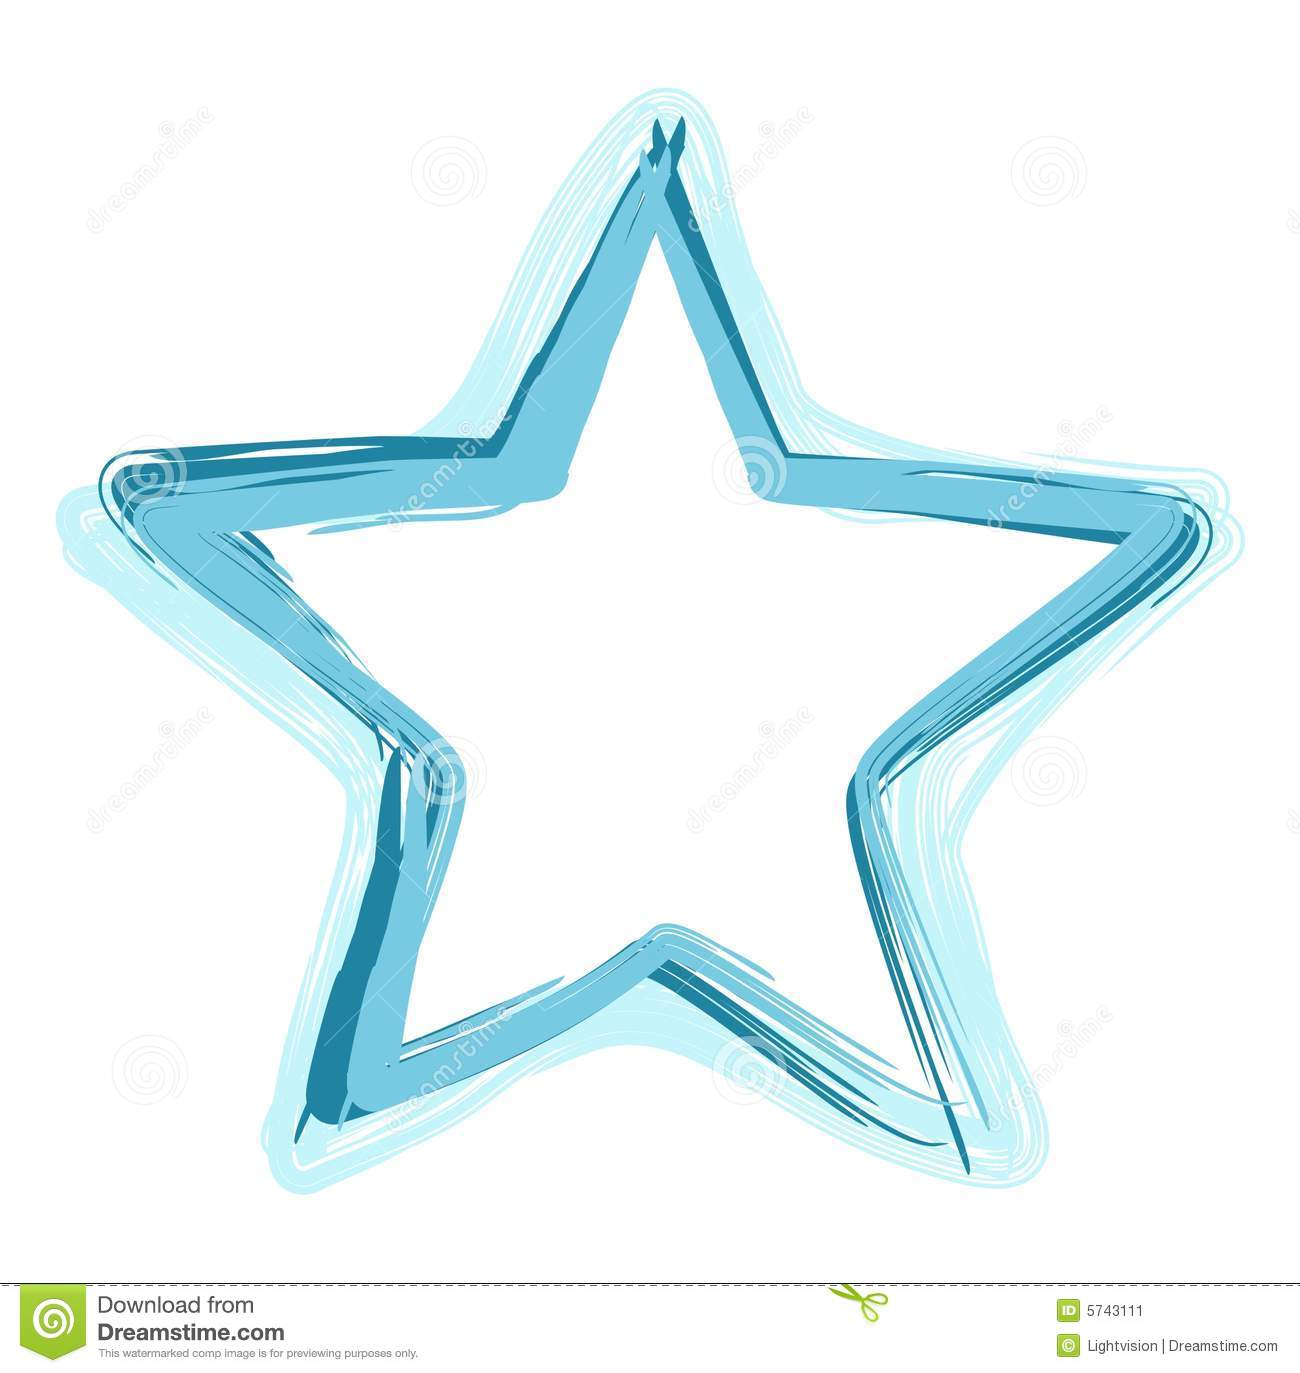 Fun and abstract star illustration. has a hand painted/brushed look ...